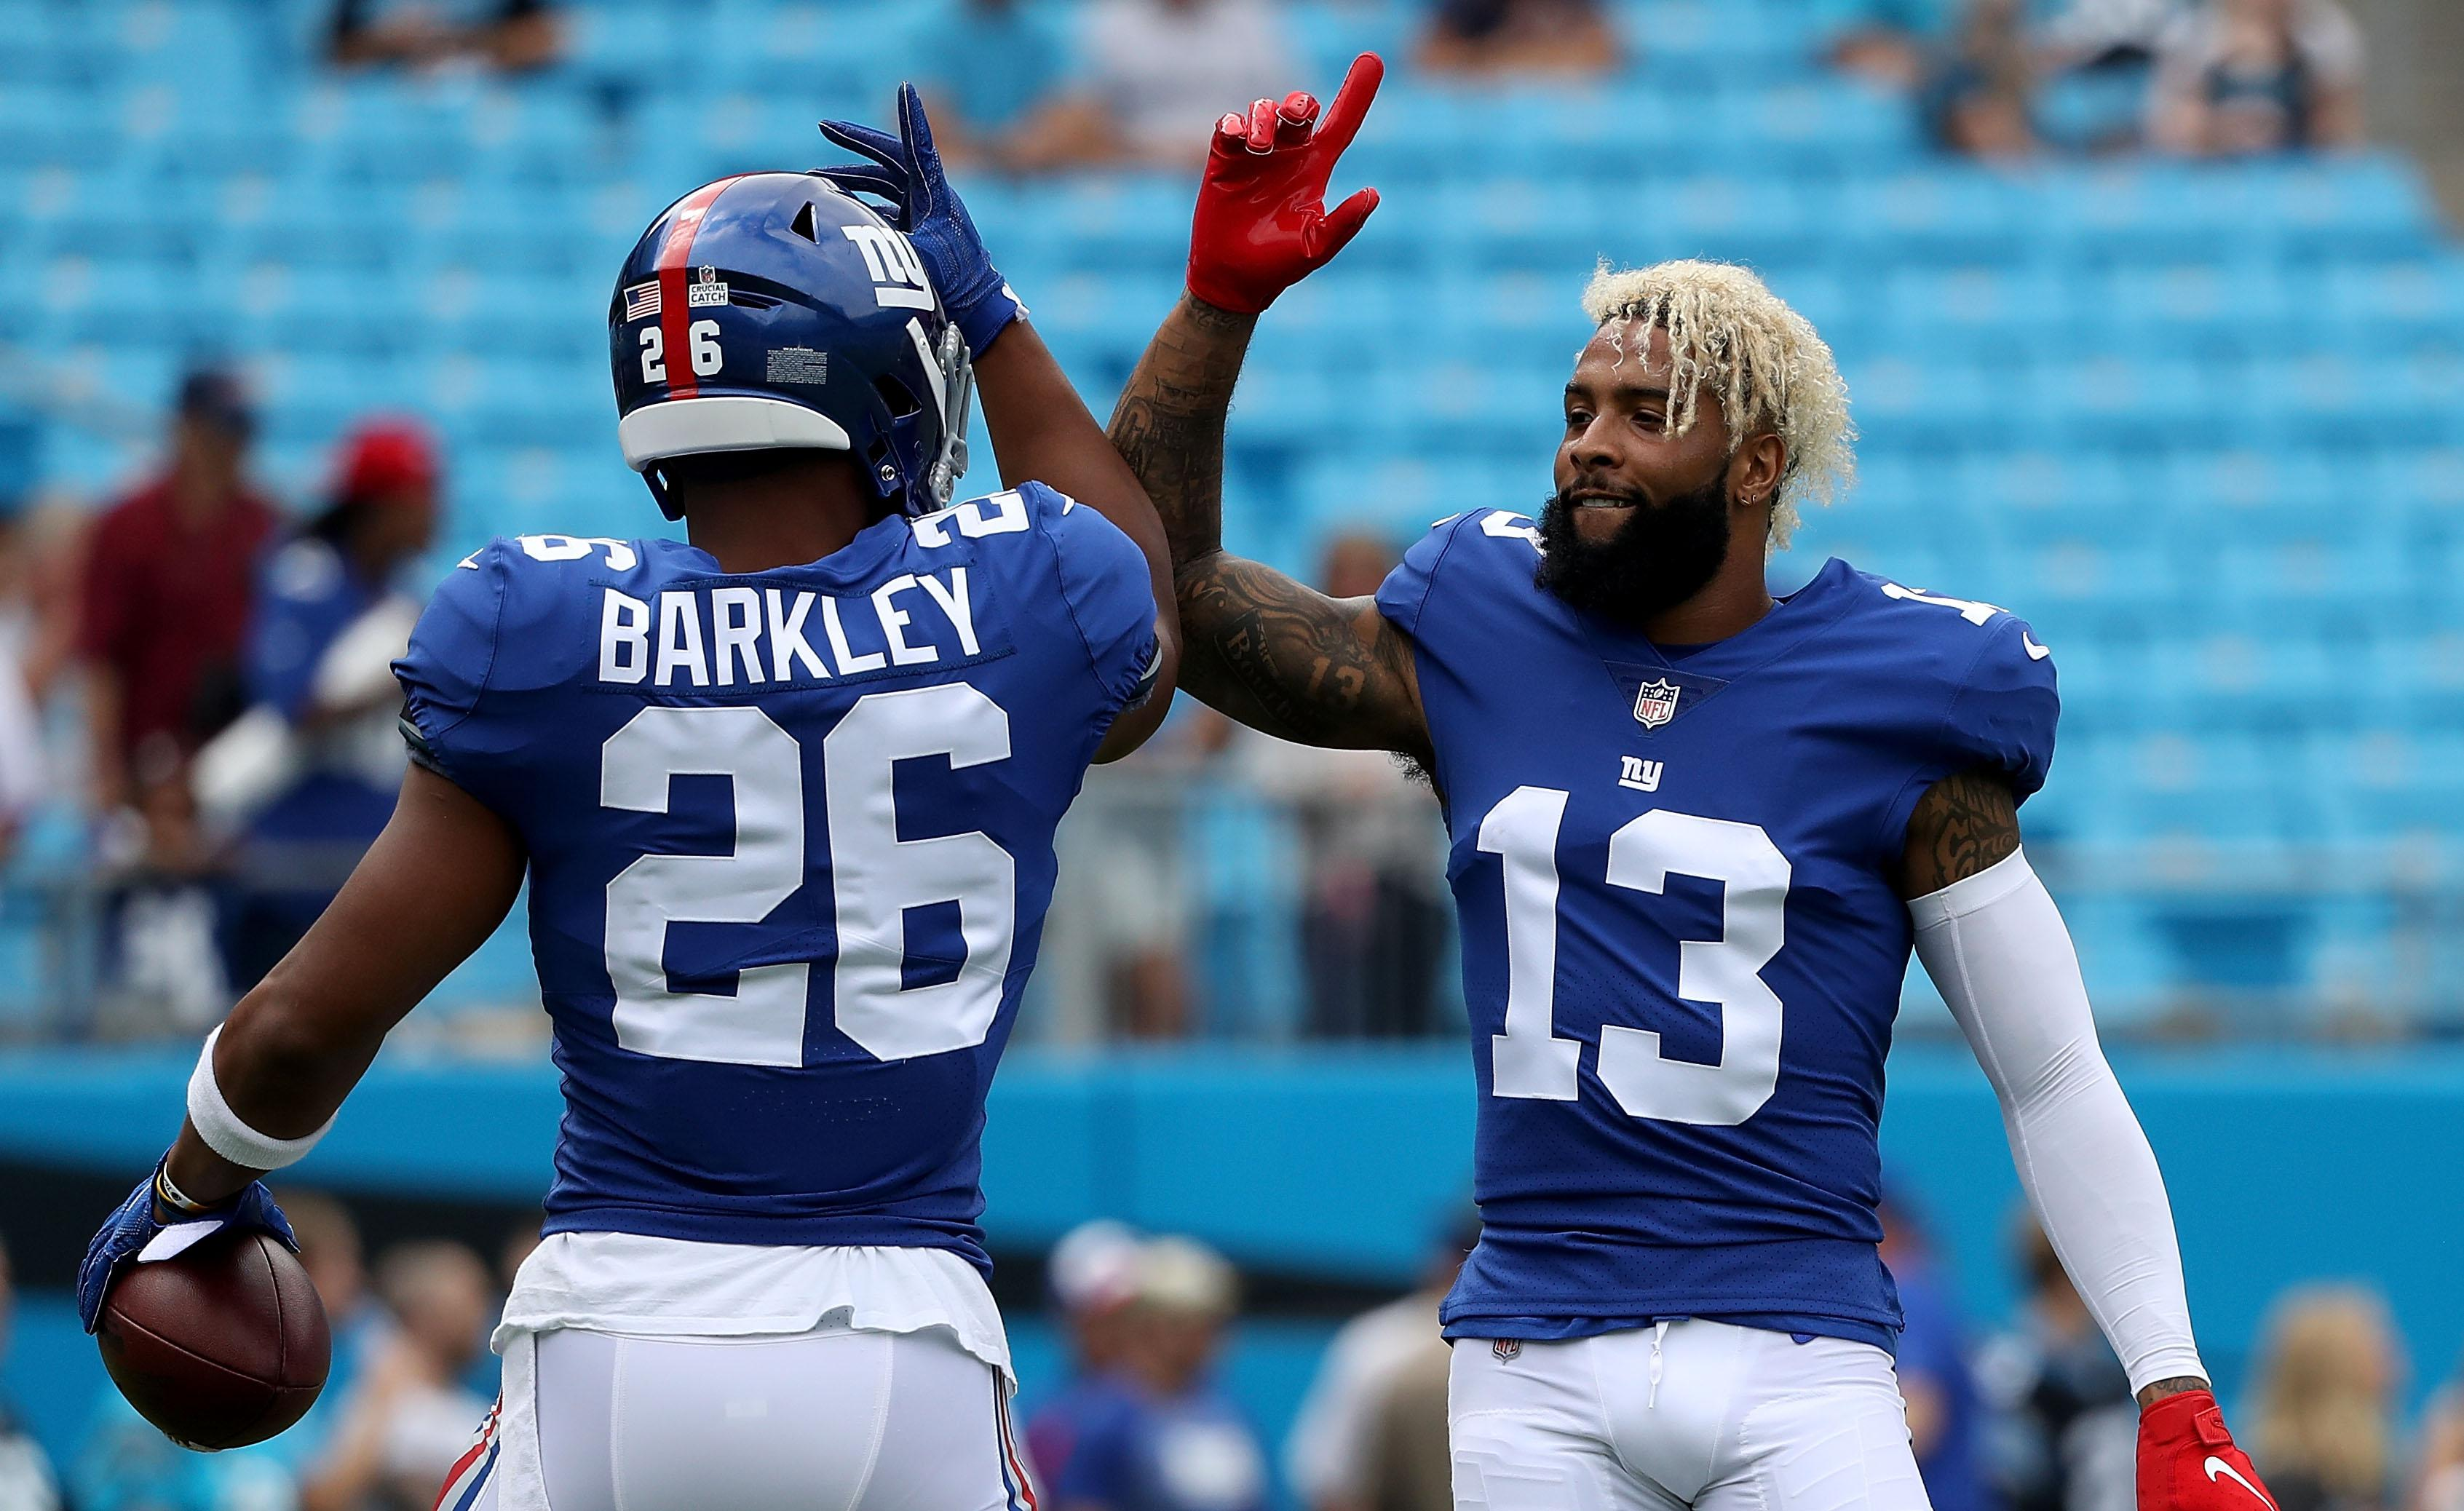 CHARLOTTE, NC - OCTOBER 07:  Odell Beckham #13 and teammate Saquon Barkley #26 of the New York Giants greet each other during warm ups against the Carolina Panthers at Bank of America Stadium on October 7, 2018 in Charlotte, North Carolina.  (Photo by Streeter Lecka/Getty Images)